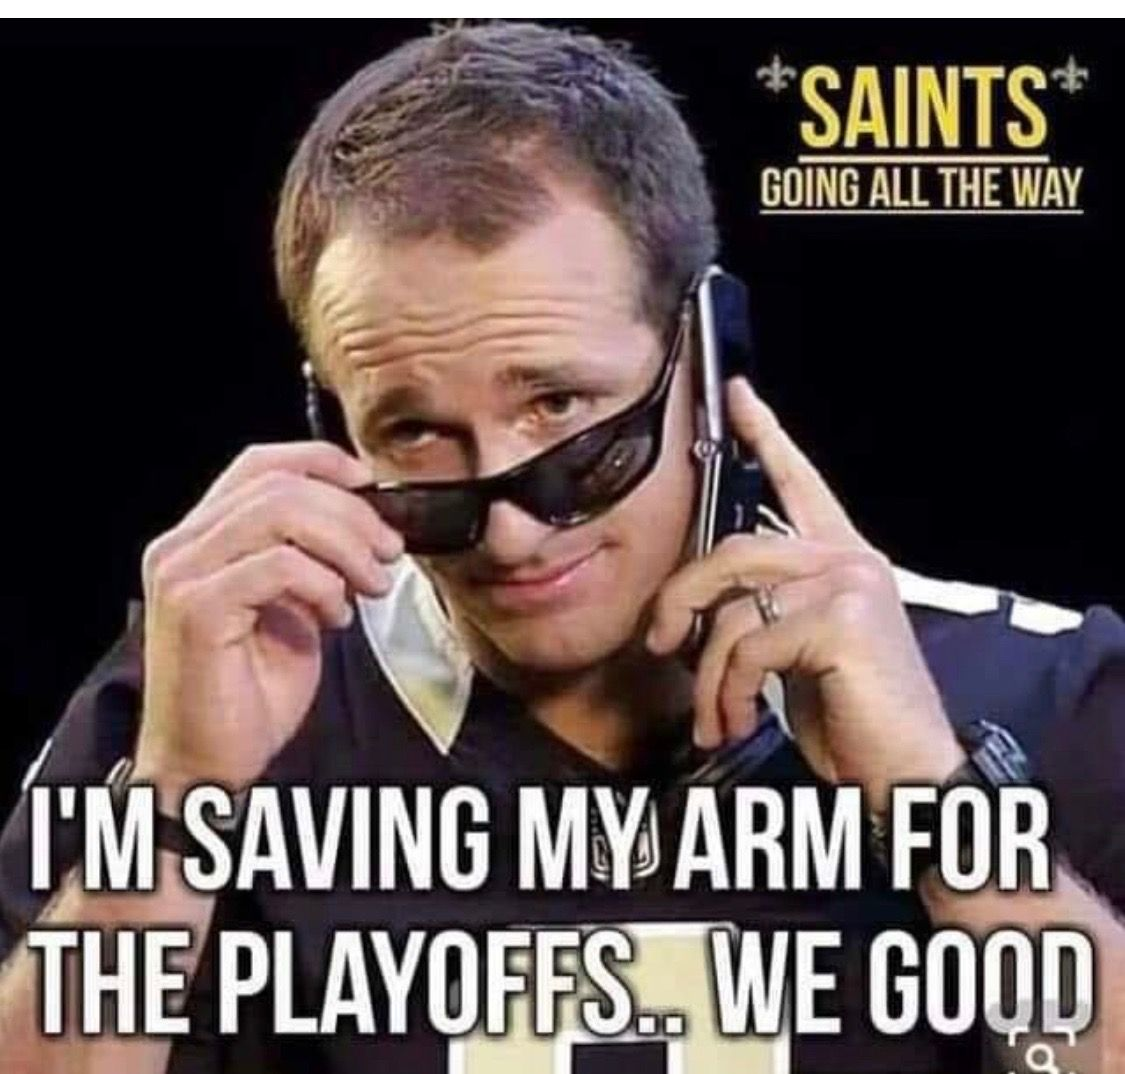 Pin By Aw On Saints New Orleans Saints Football Saints Football New Orleans Saints